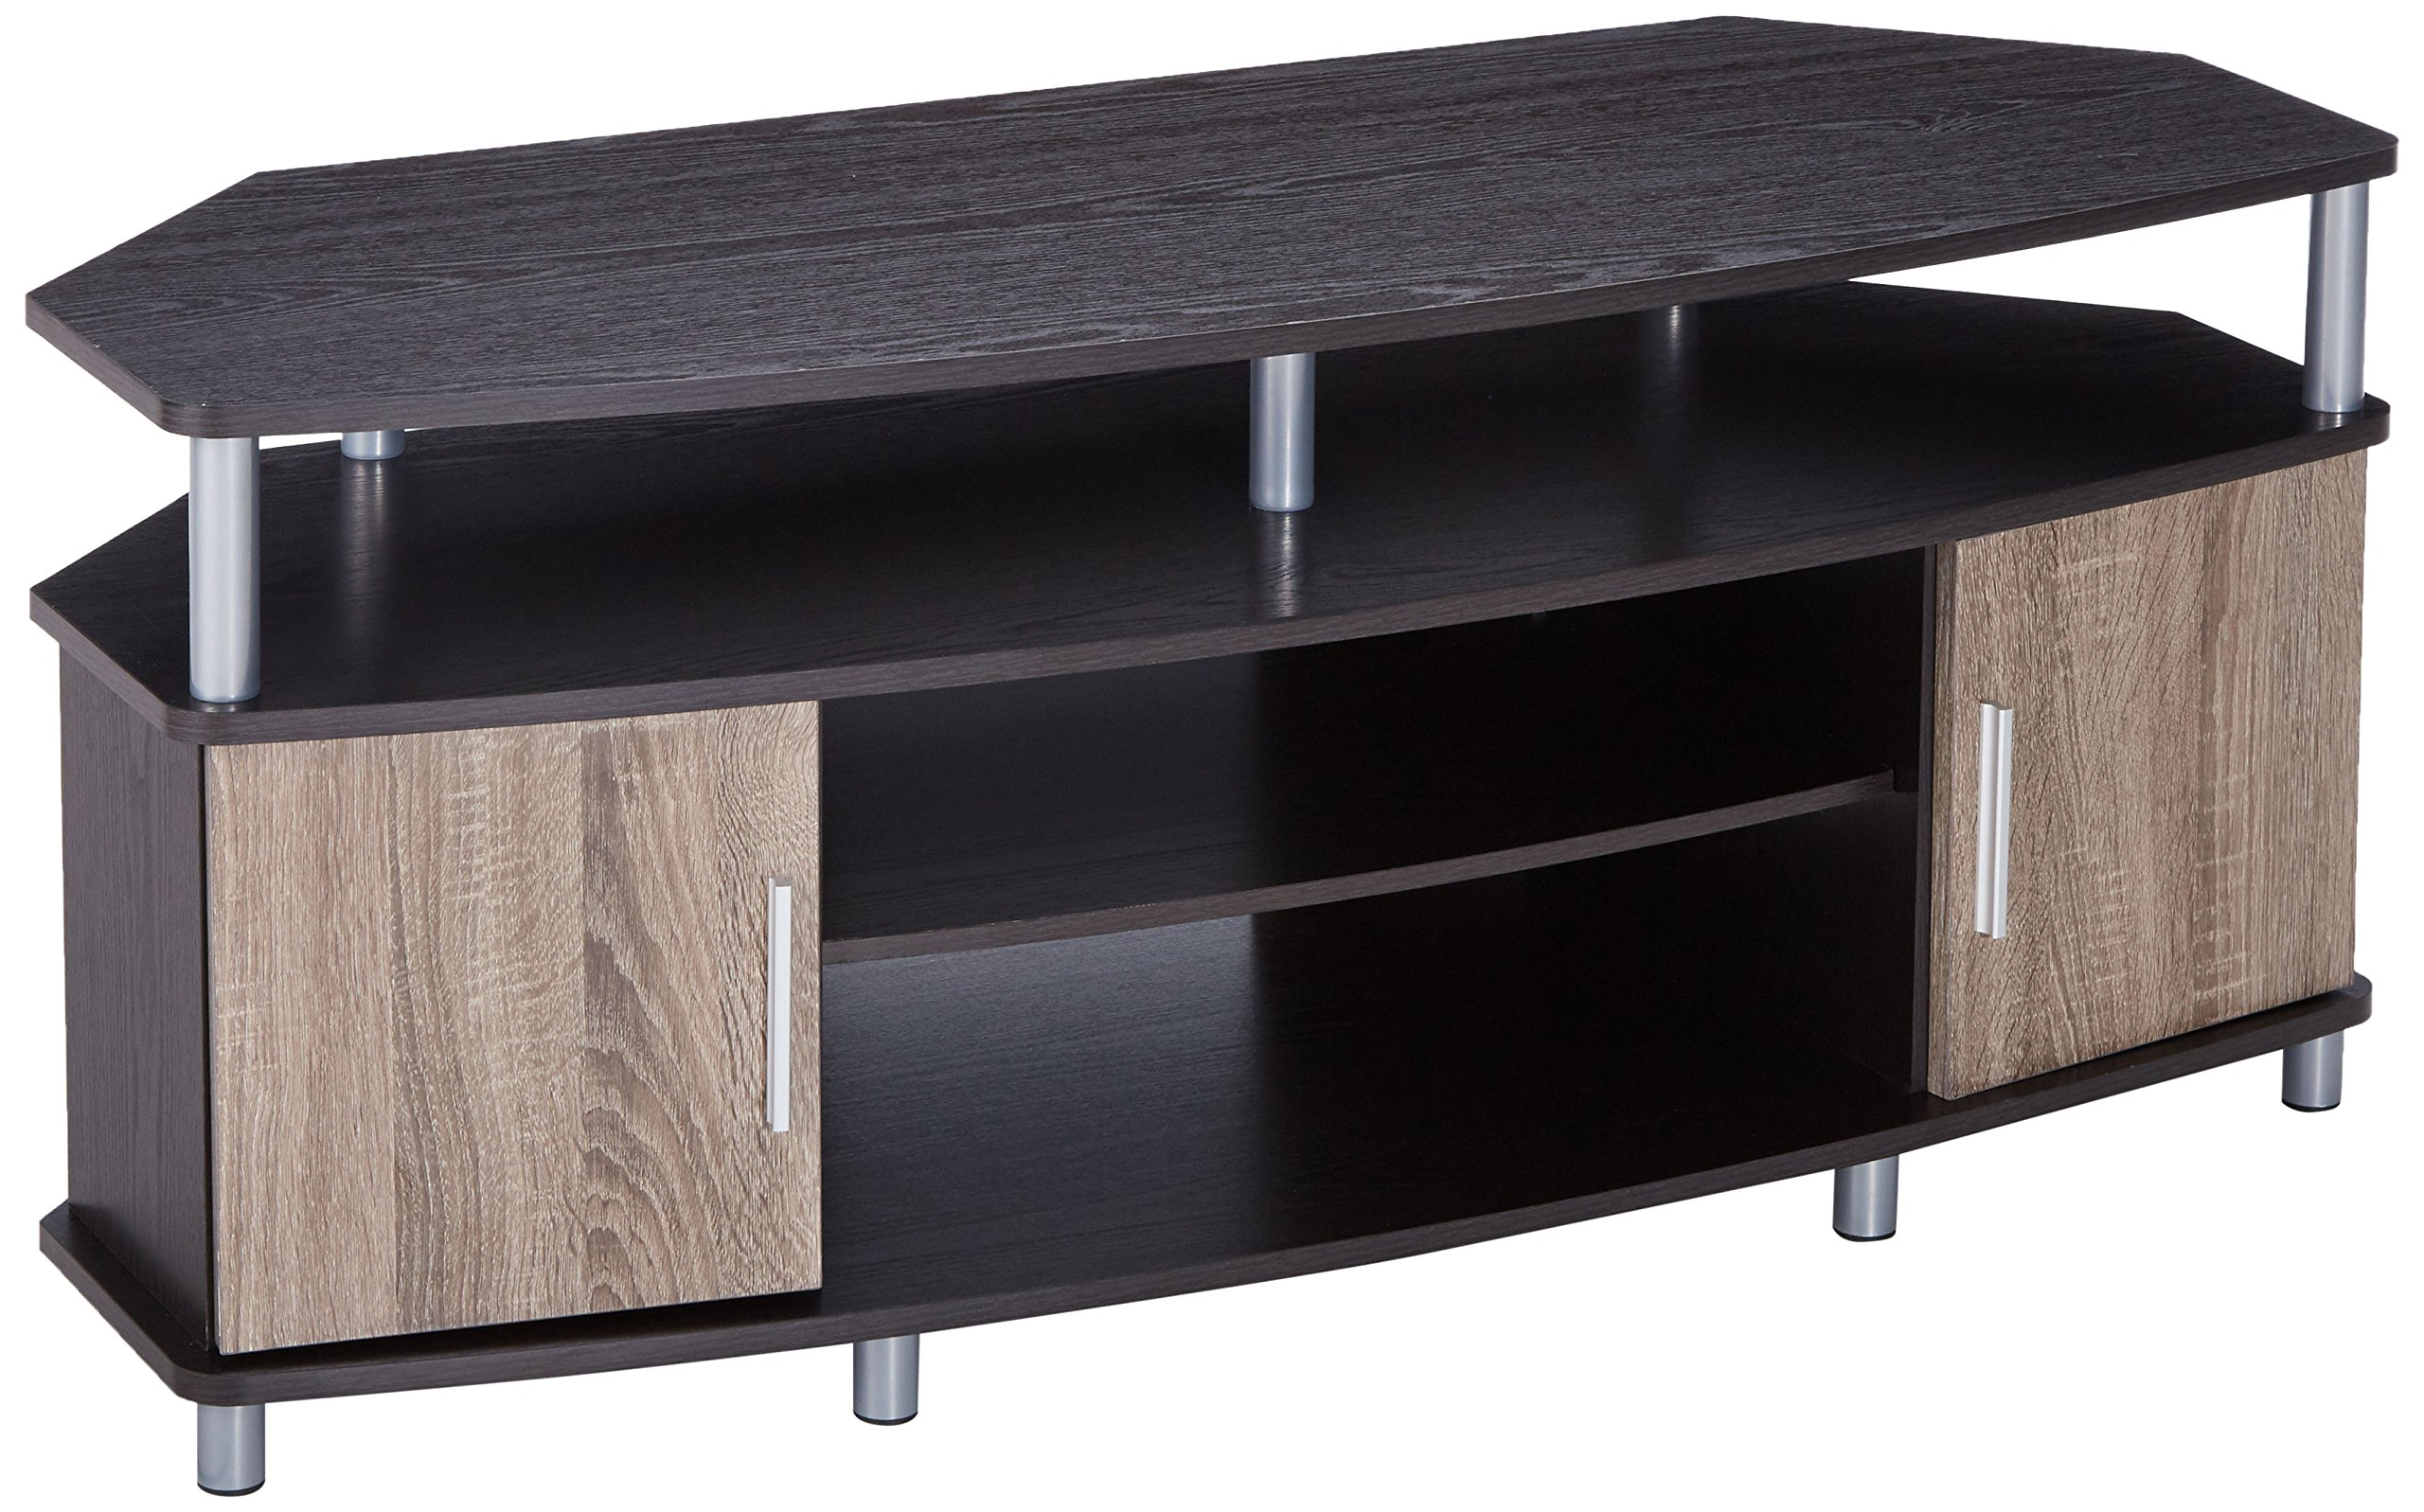 Ameriwood Home Carson Corner TV Stand for TVs up to 50'', Espresso/Weathered Oak